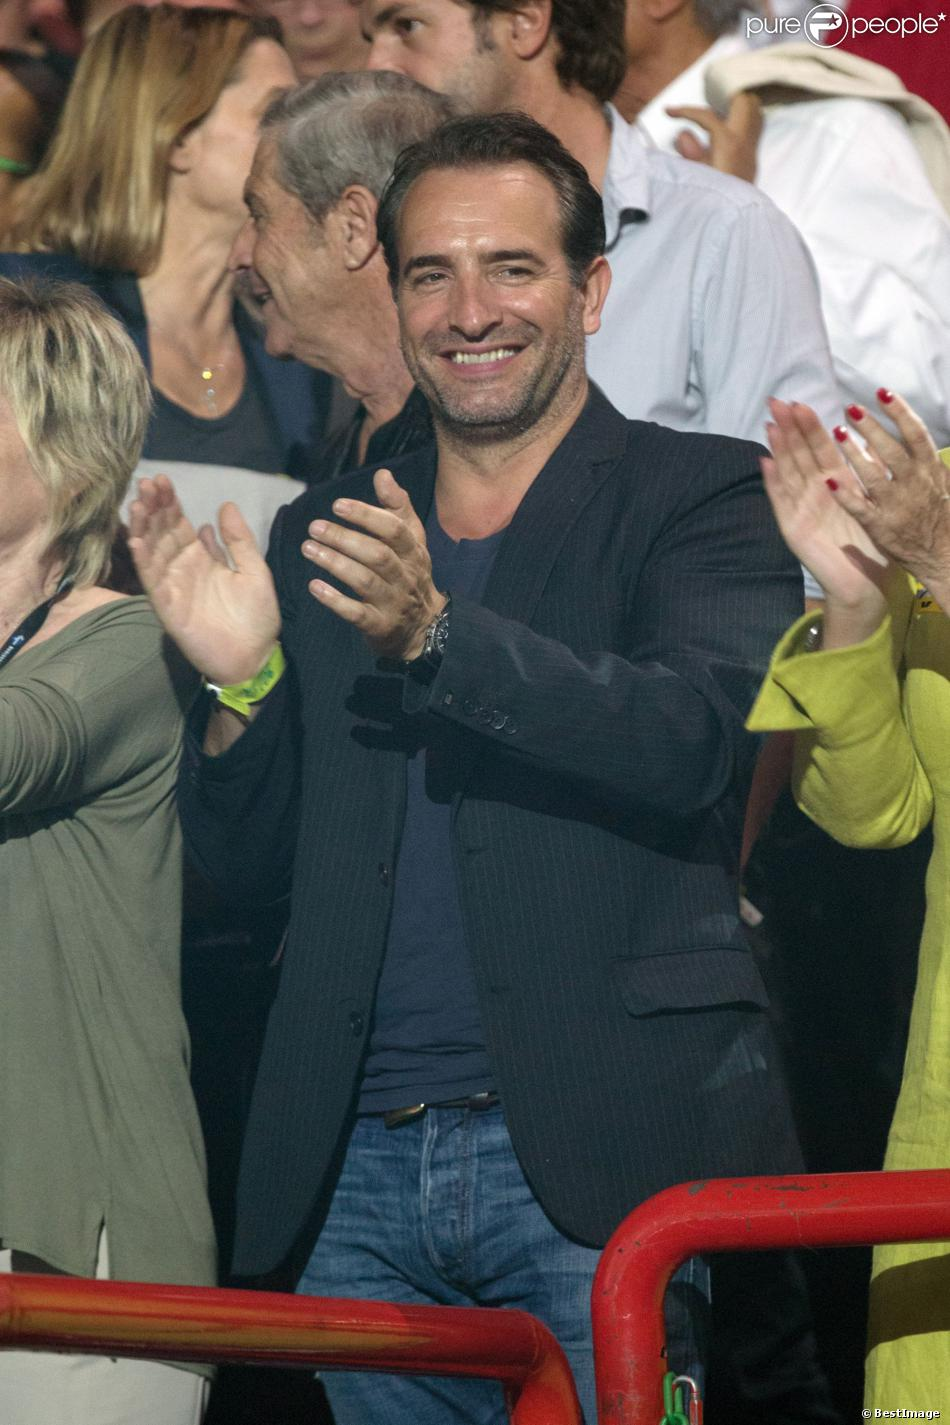 Exclusif jean dujardin au concert de johnny hallyday for Dujardin johnny